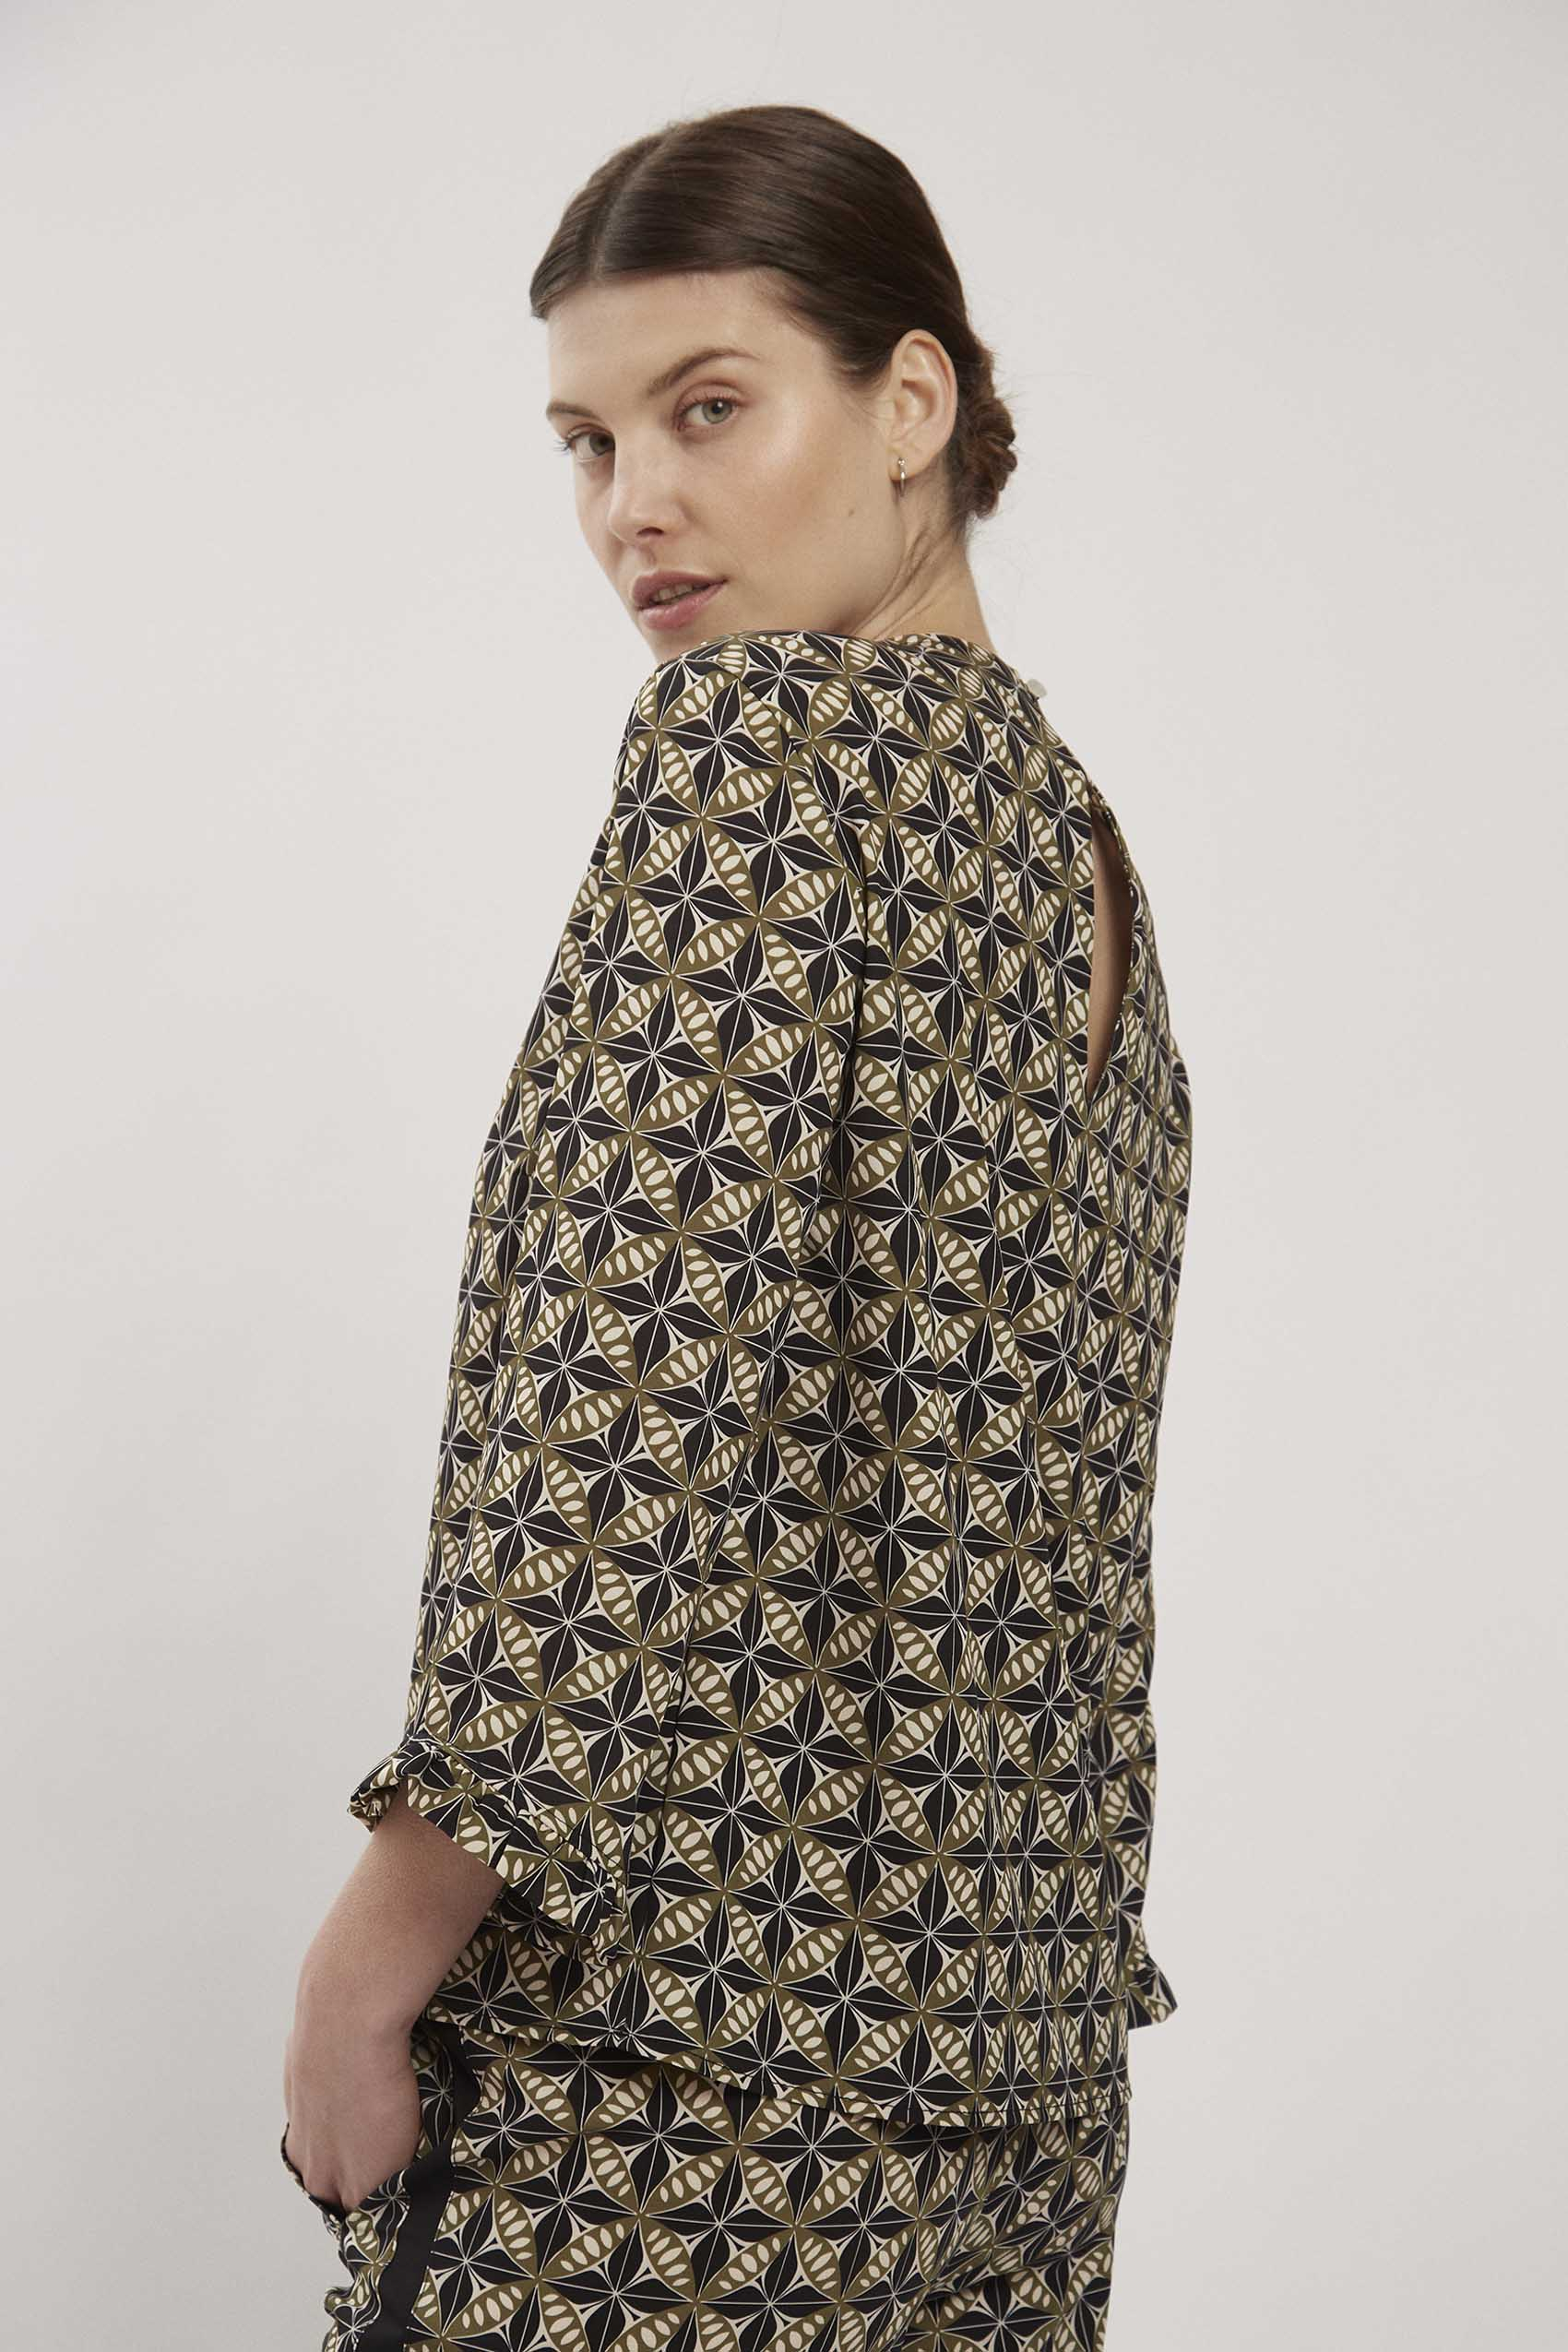 awada_blusa-aaron_43-06-2021__picture-17300